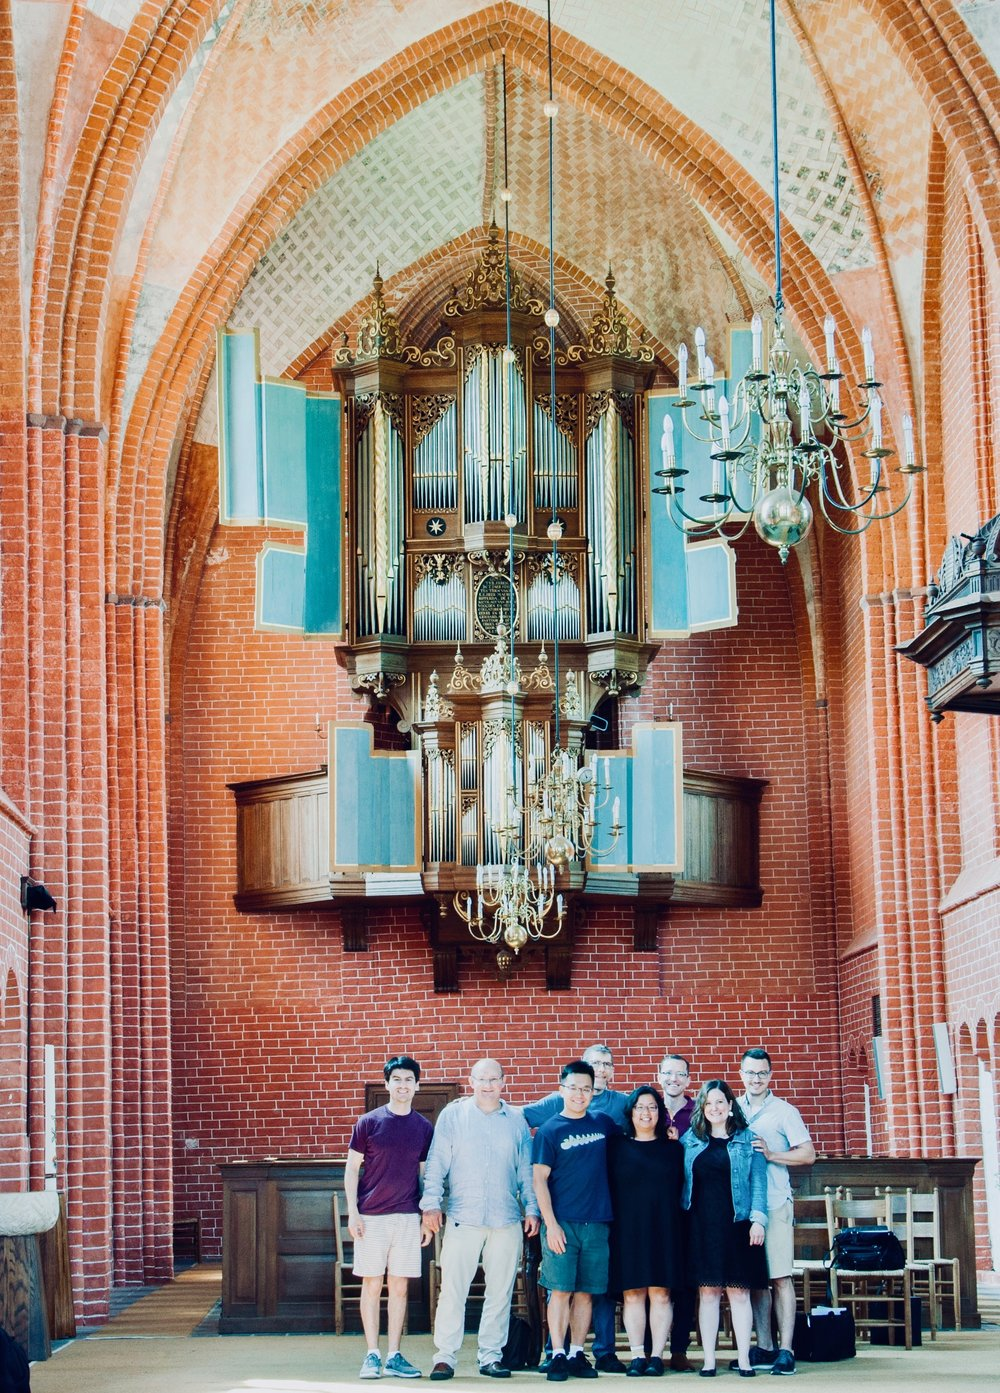 Members of Boston Organ Studio in Zeerijp, Holland.